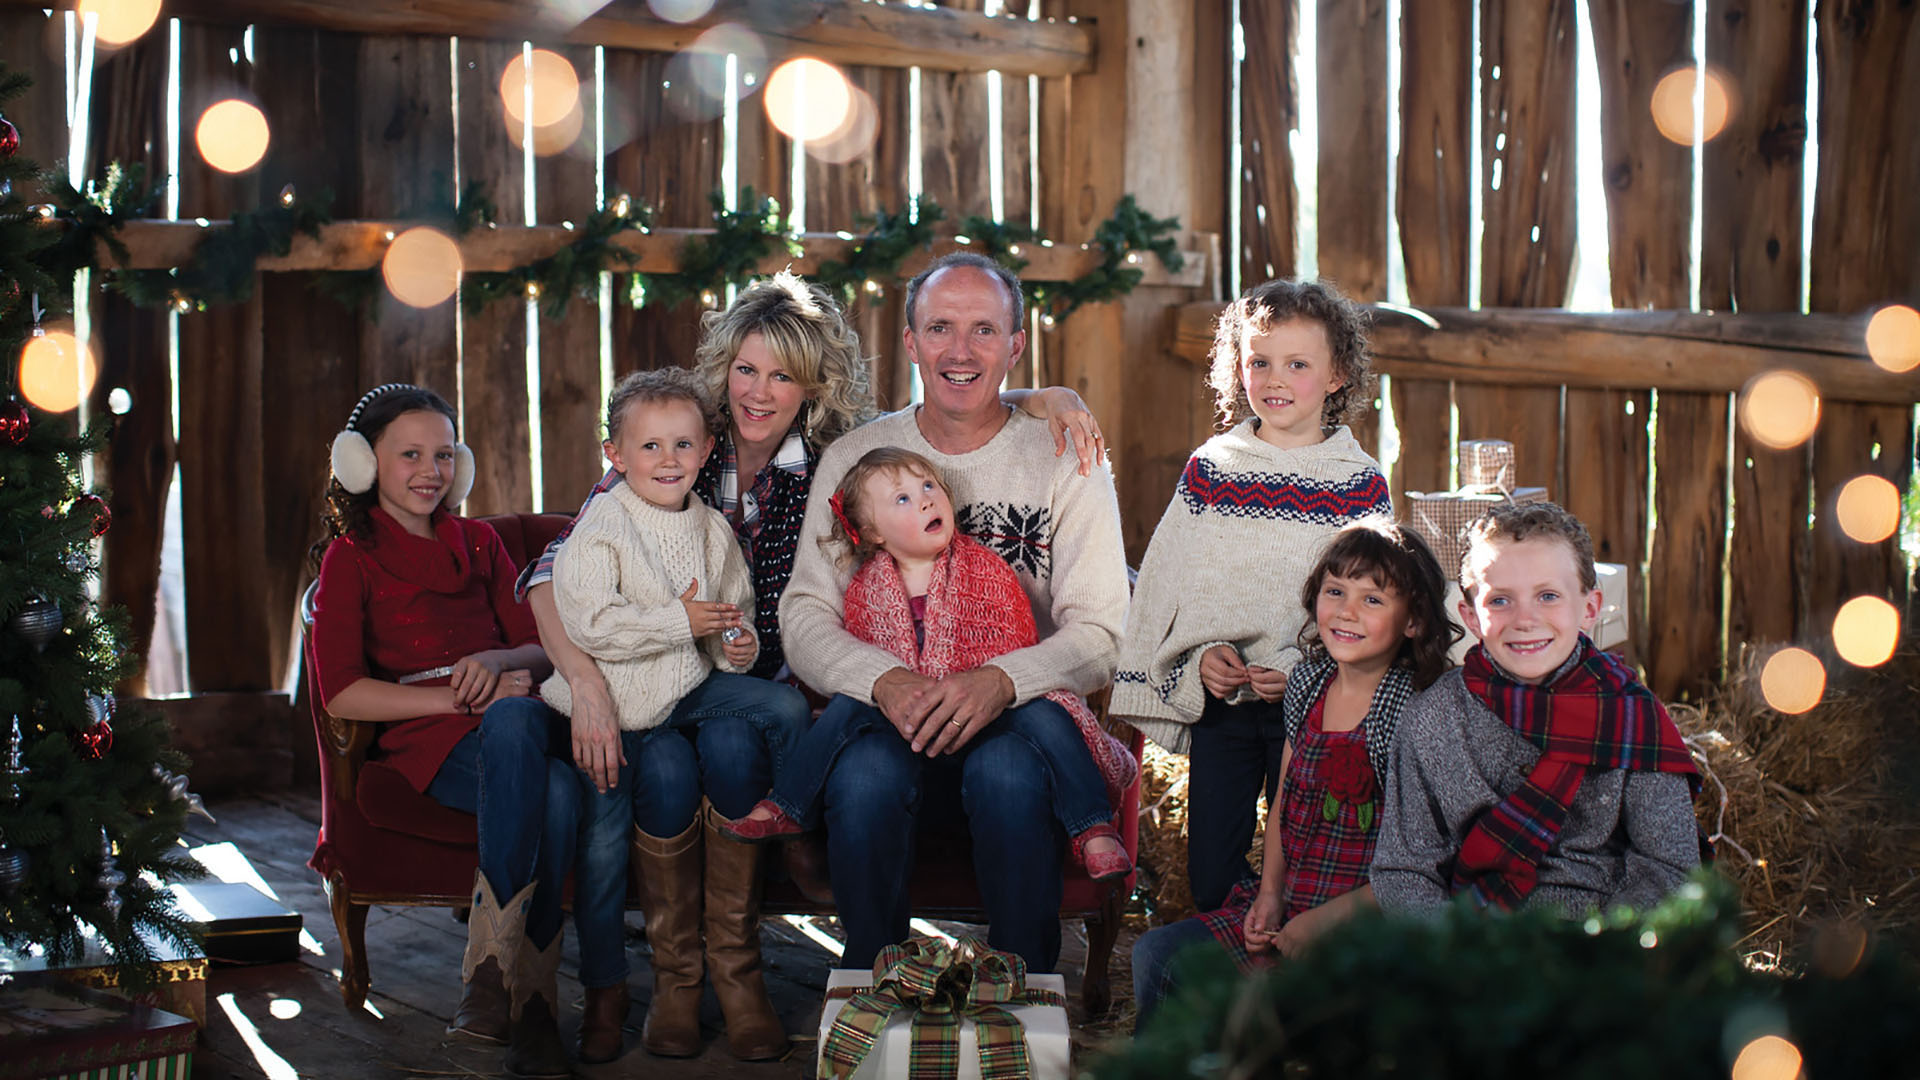 Natalie MacMaster, Donnell Leahy, and their children for A Celtic Family Christmas